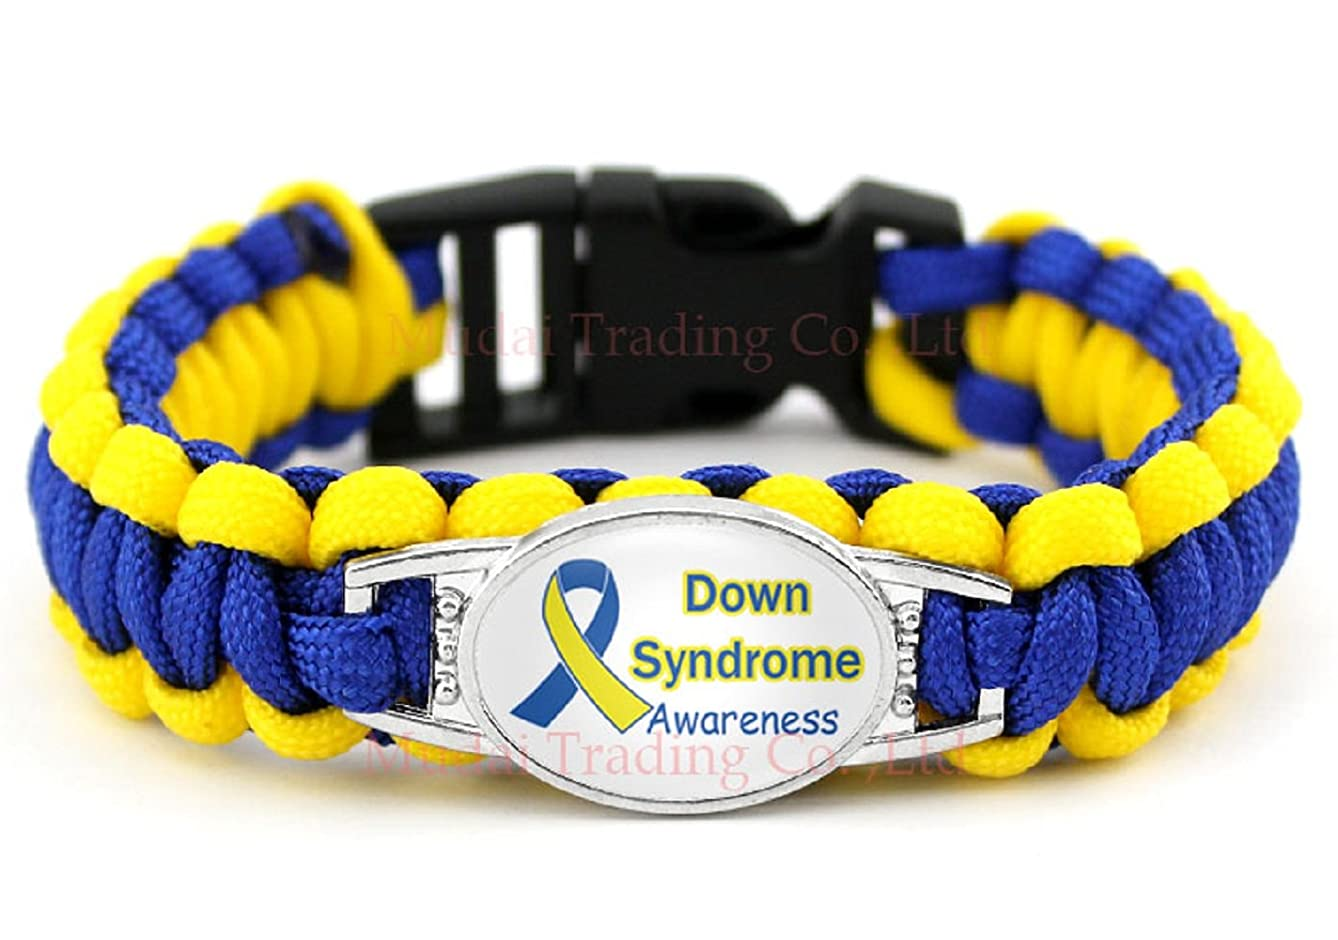 Down Syndrome Awareness para Cord Bracelet Wristband